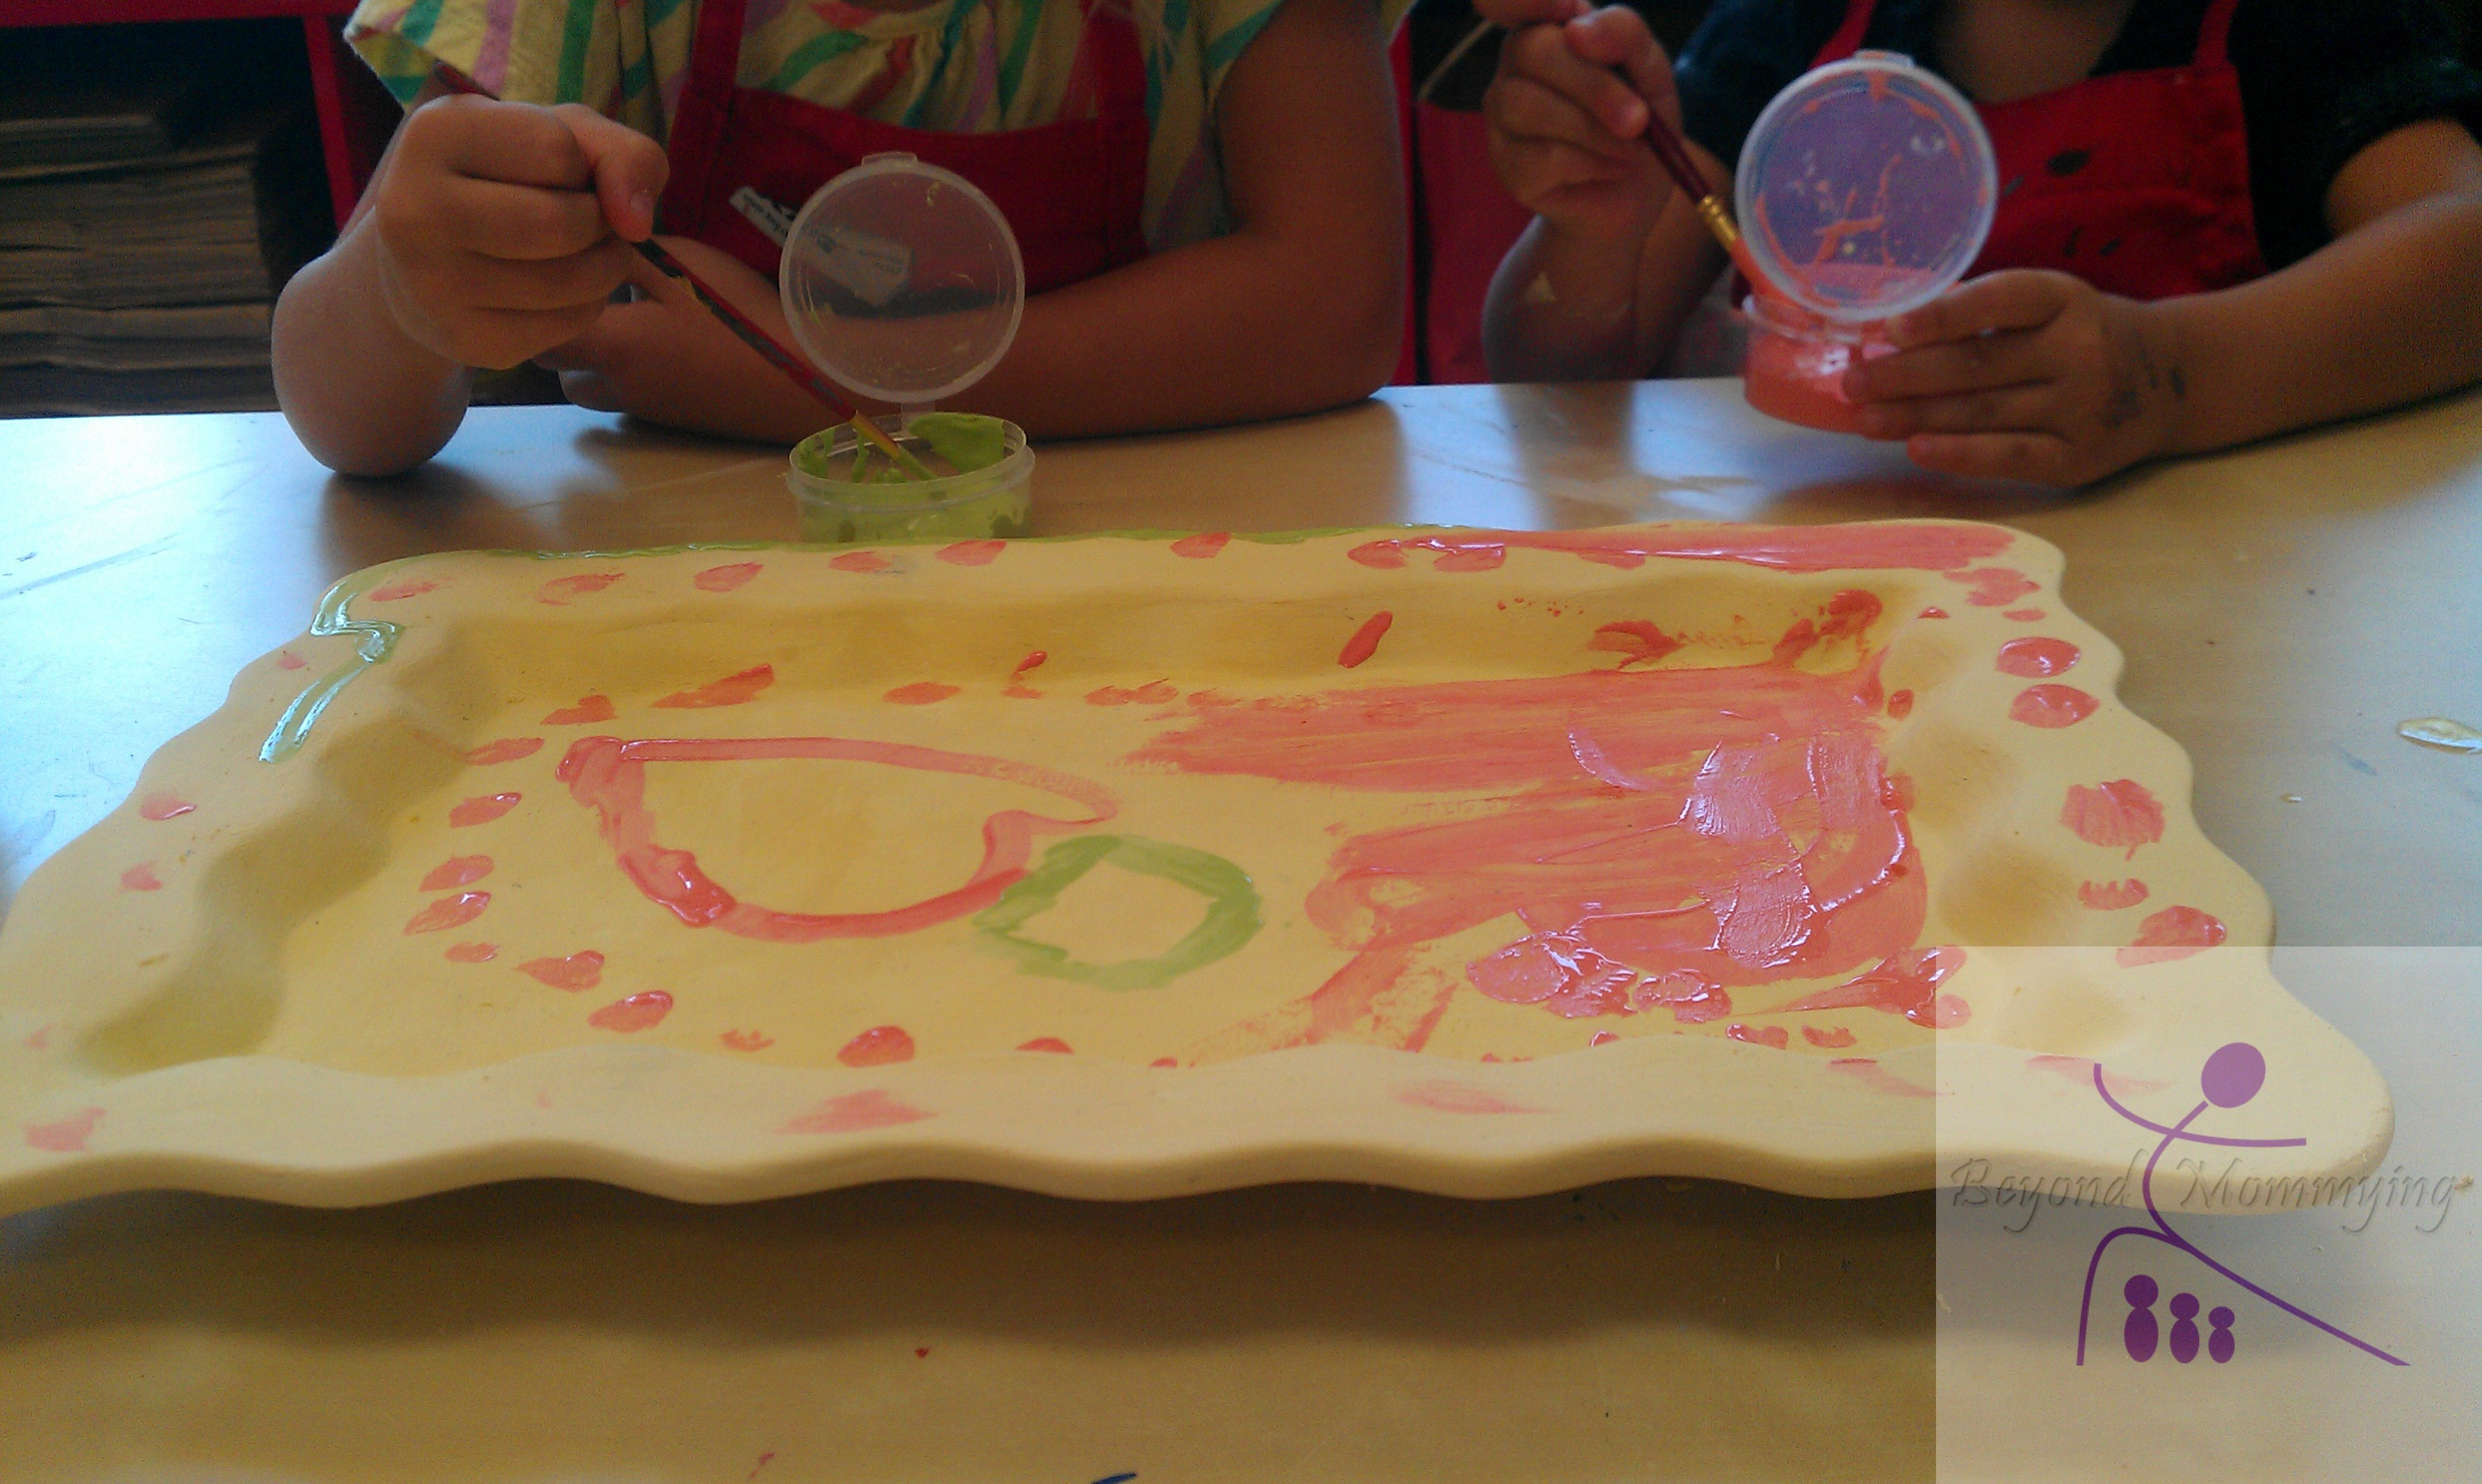 Family Pottery Painting Fun